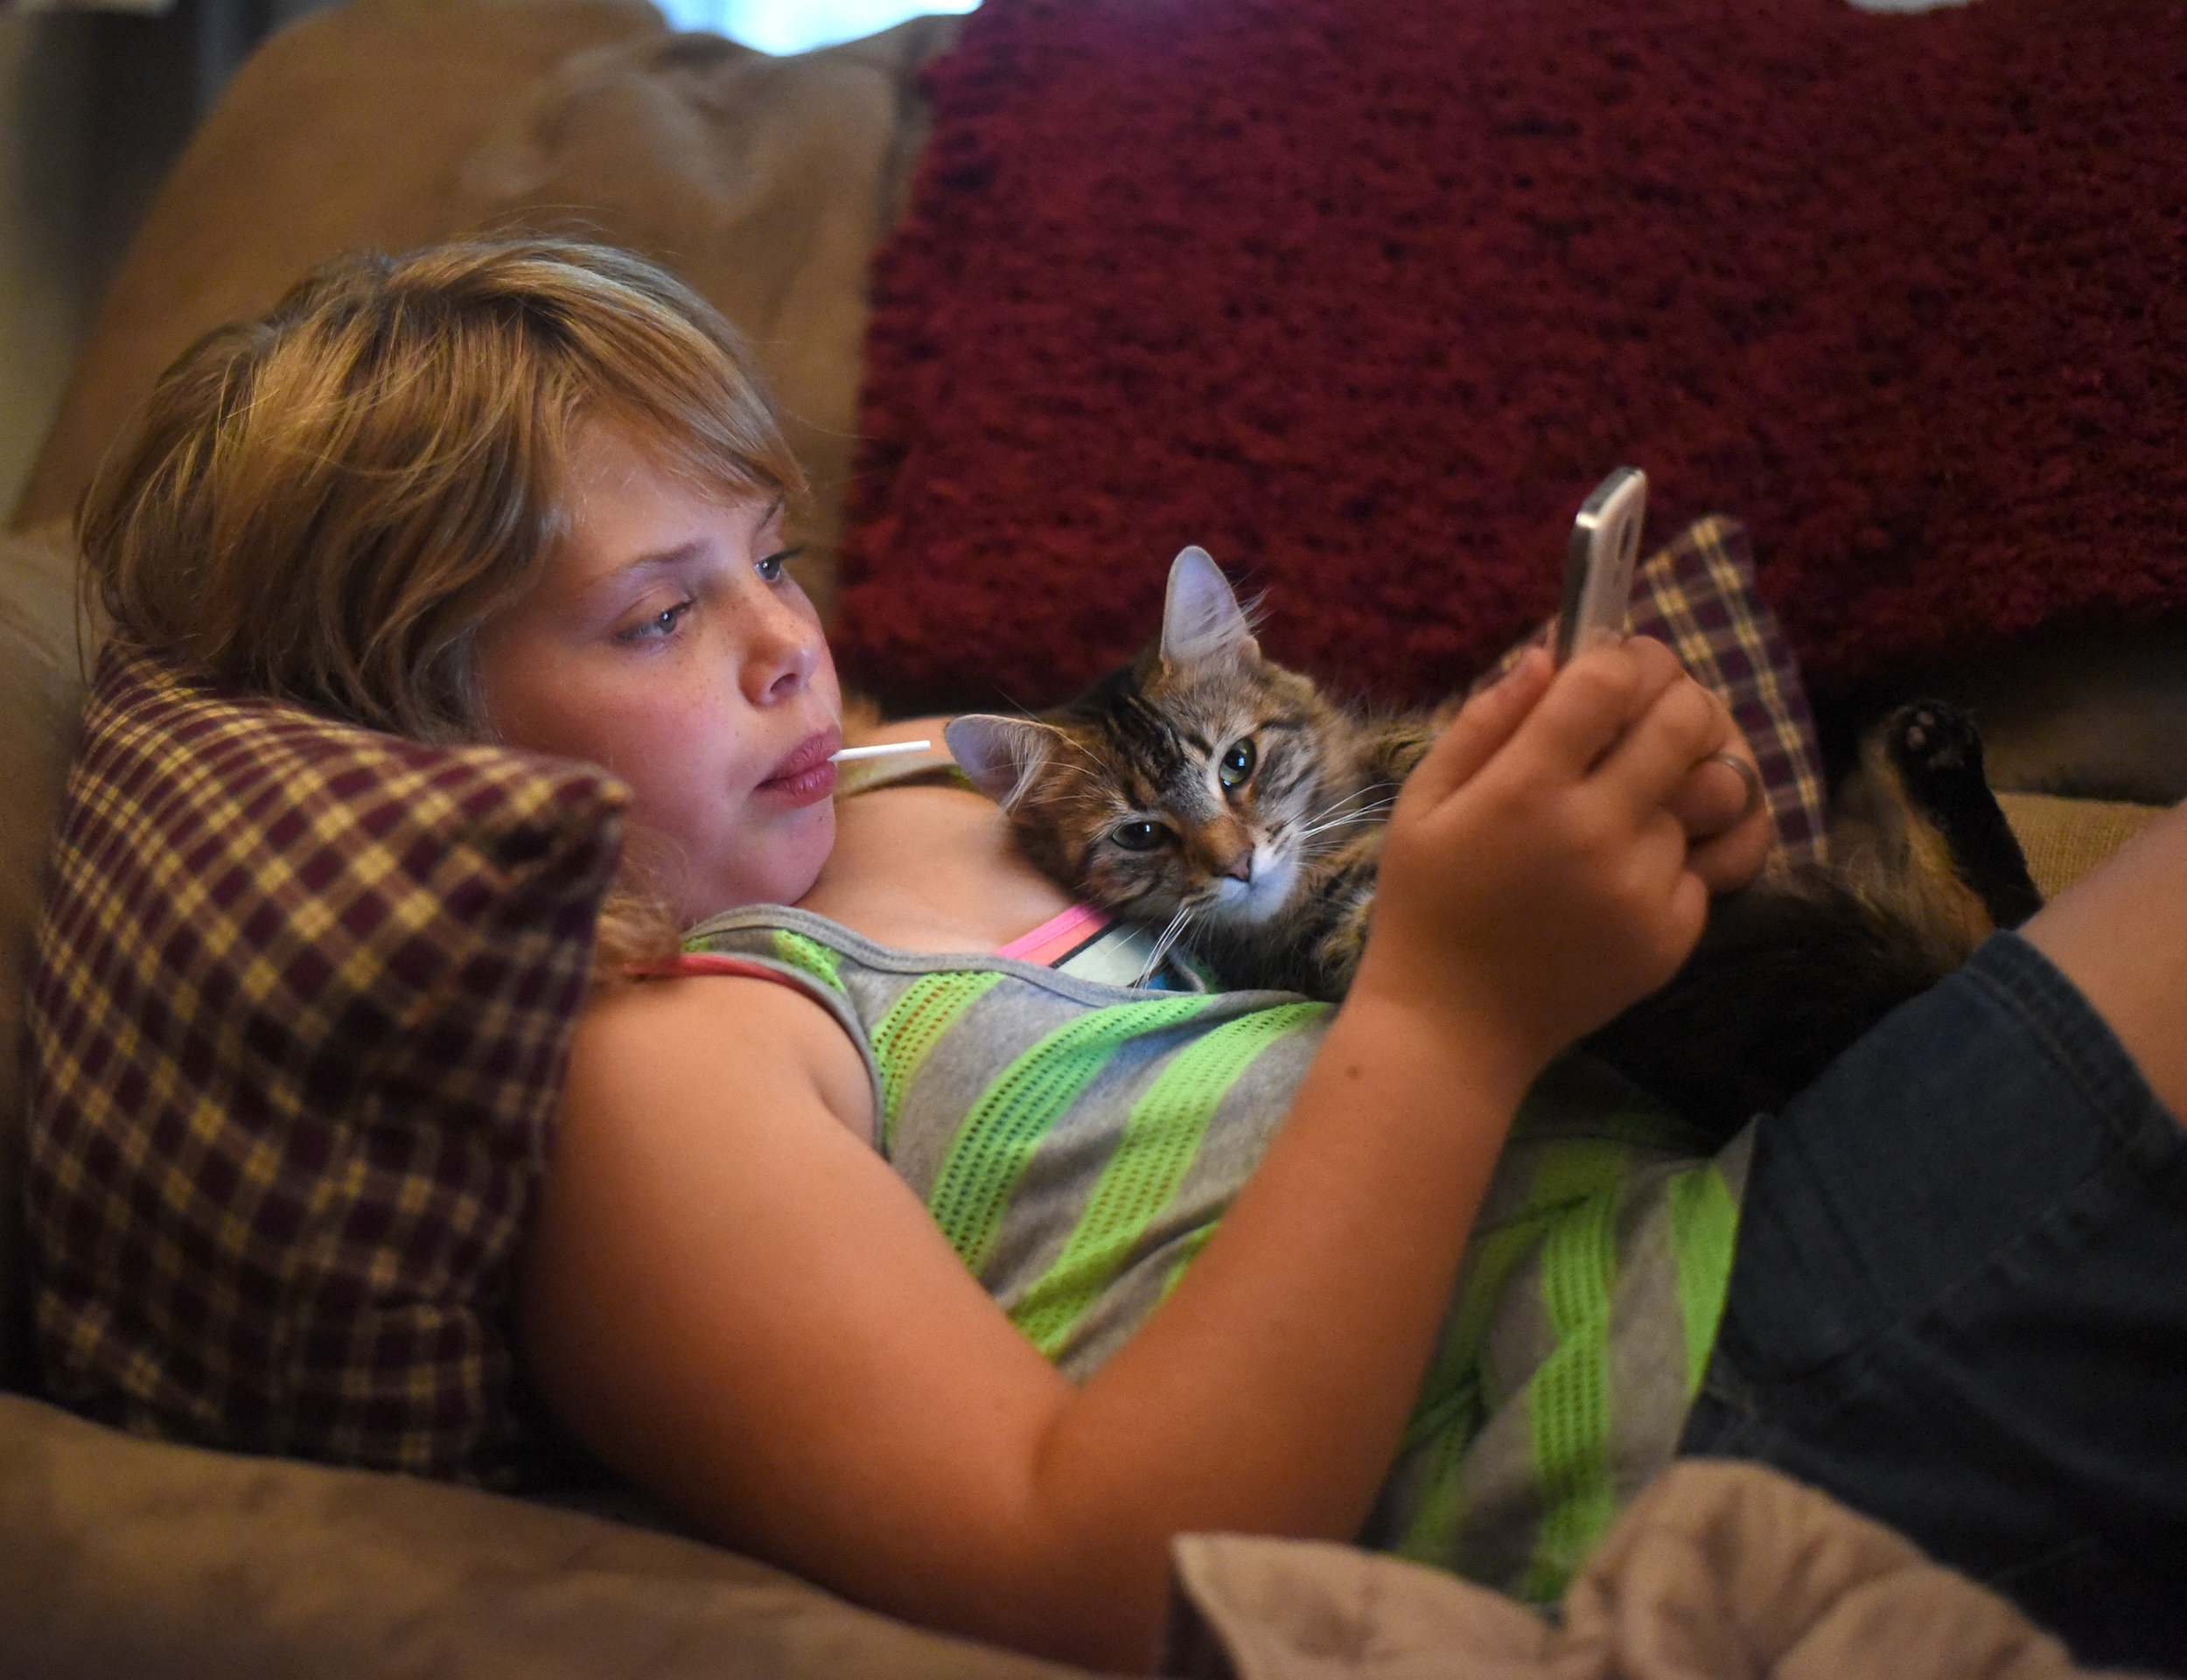 Nine-year-old Alivia Henning, who has autism, lays on her couch with her cat, Elsa, while playing on a cell phone at her home Sept. 22, 2016.